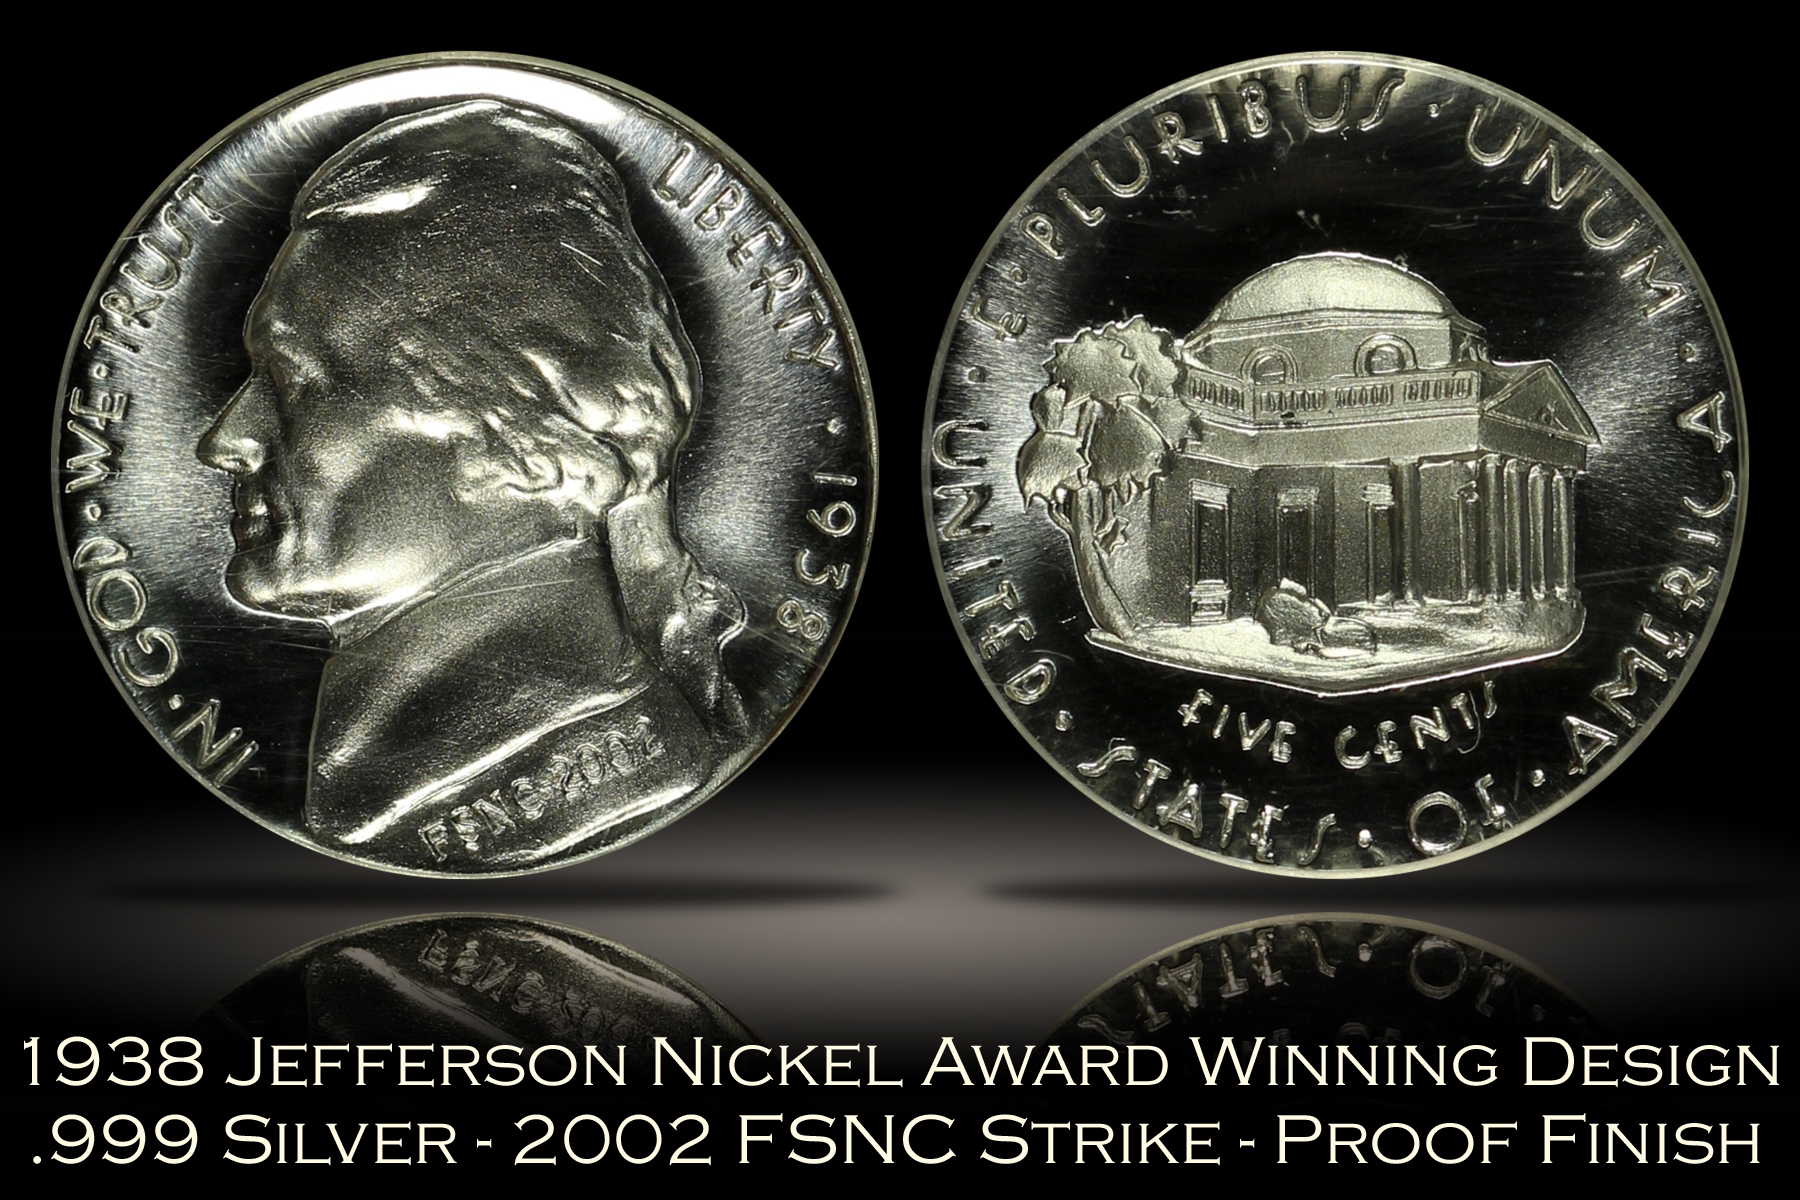 1938 Jefferson Nickel Award Winning Design FSNC 2002 Strike SEGS .999 Silver Set #857